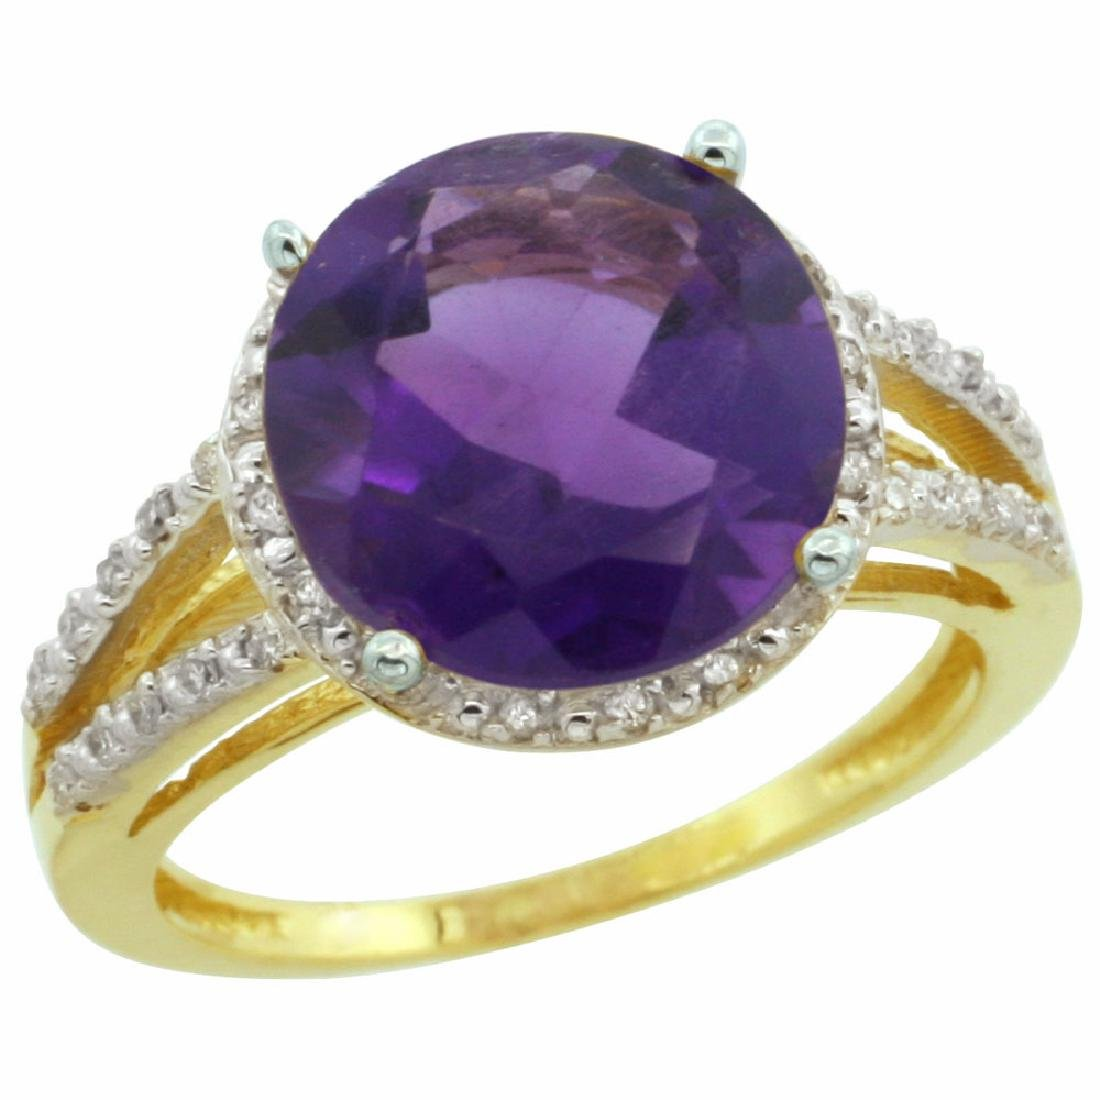 Natural 5.34 ctw Amethyst & Diamond Engagement Ring 14K